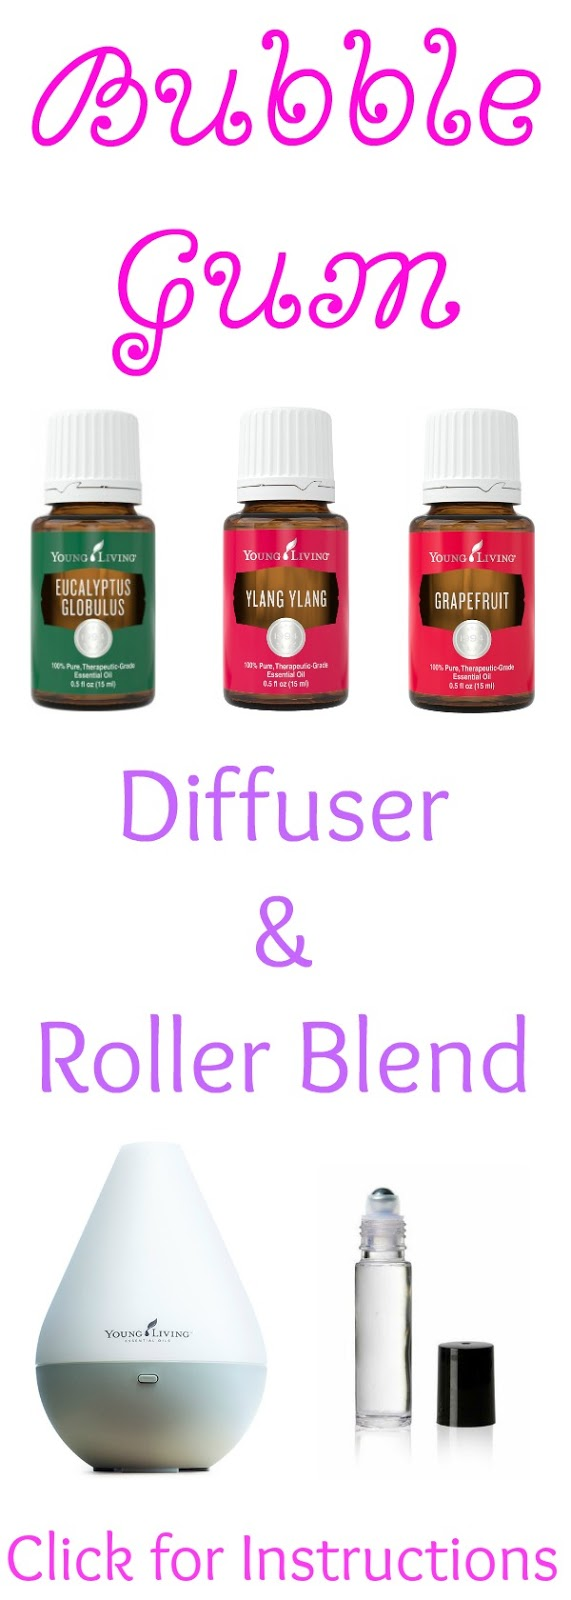 A fresh and fun diffuser or roller blend to use with Eucalyptus, Ylang Ylang and Grapefruit Young Living Essential Oils! You and your home will smell absolutely amazing! Bubble Gum Diffuser and Roller Blend from Mama Loves Her Oils!